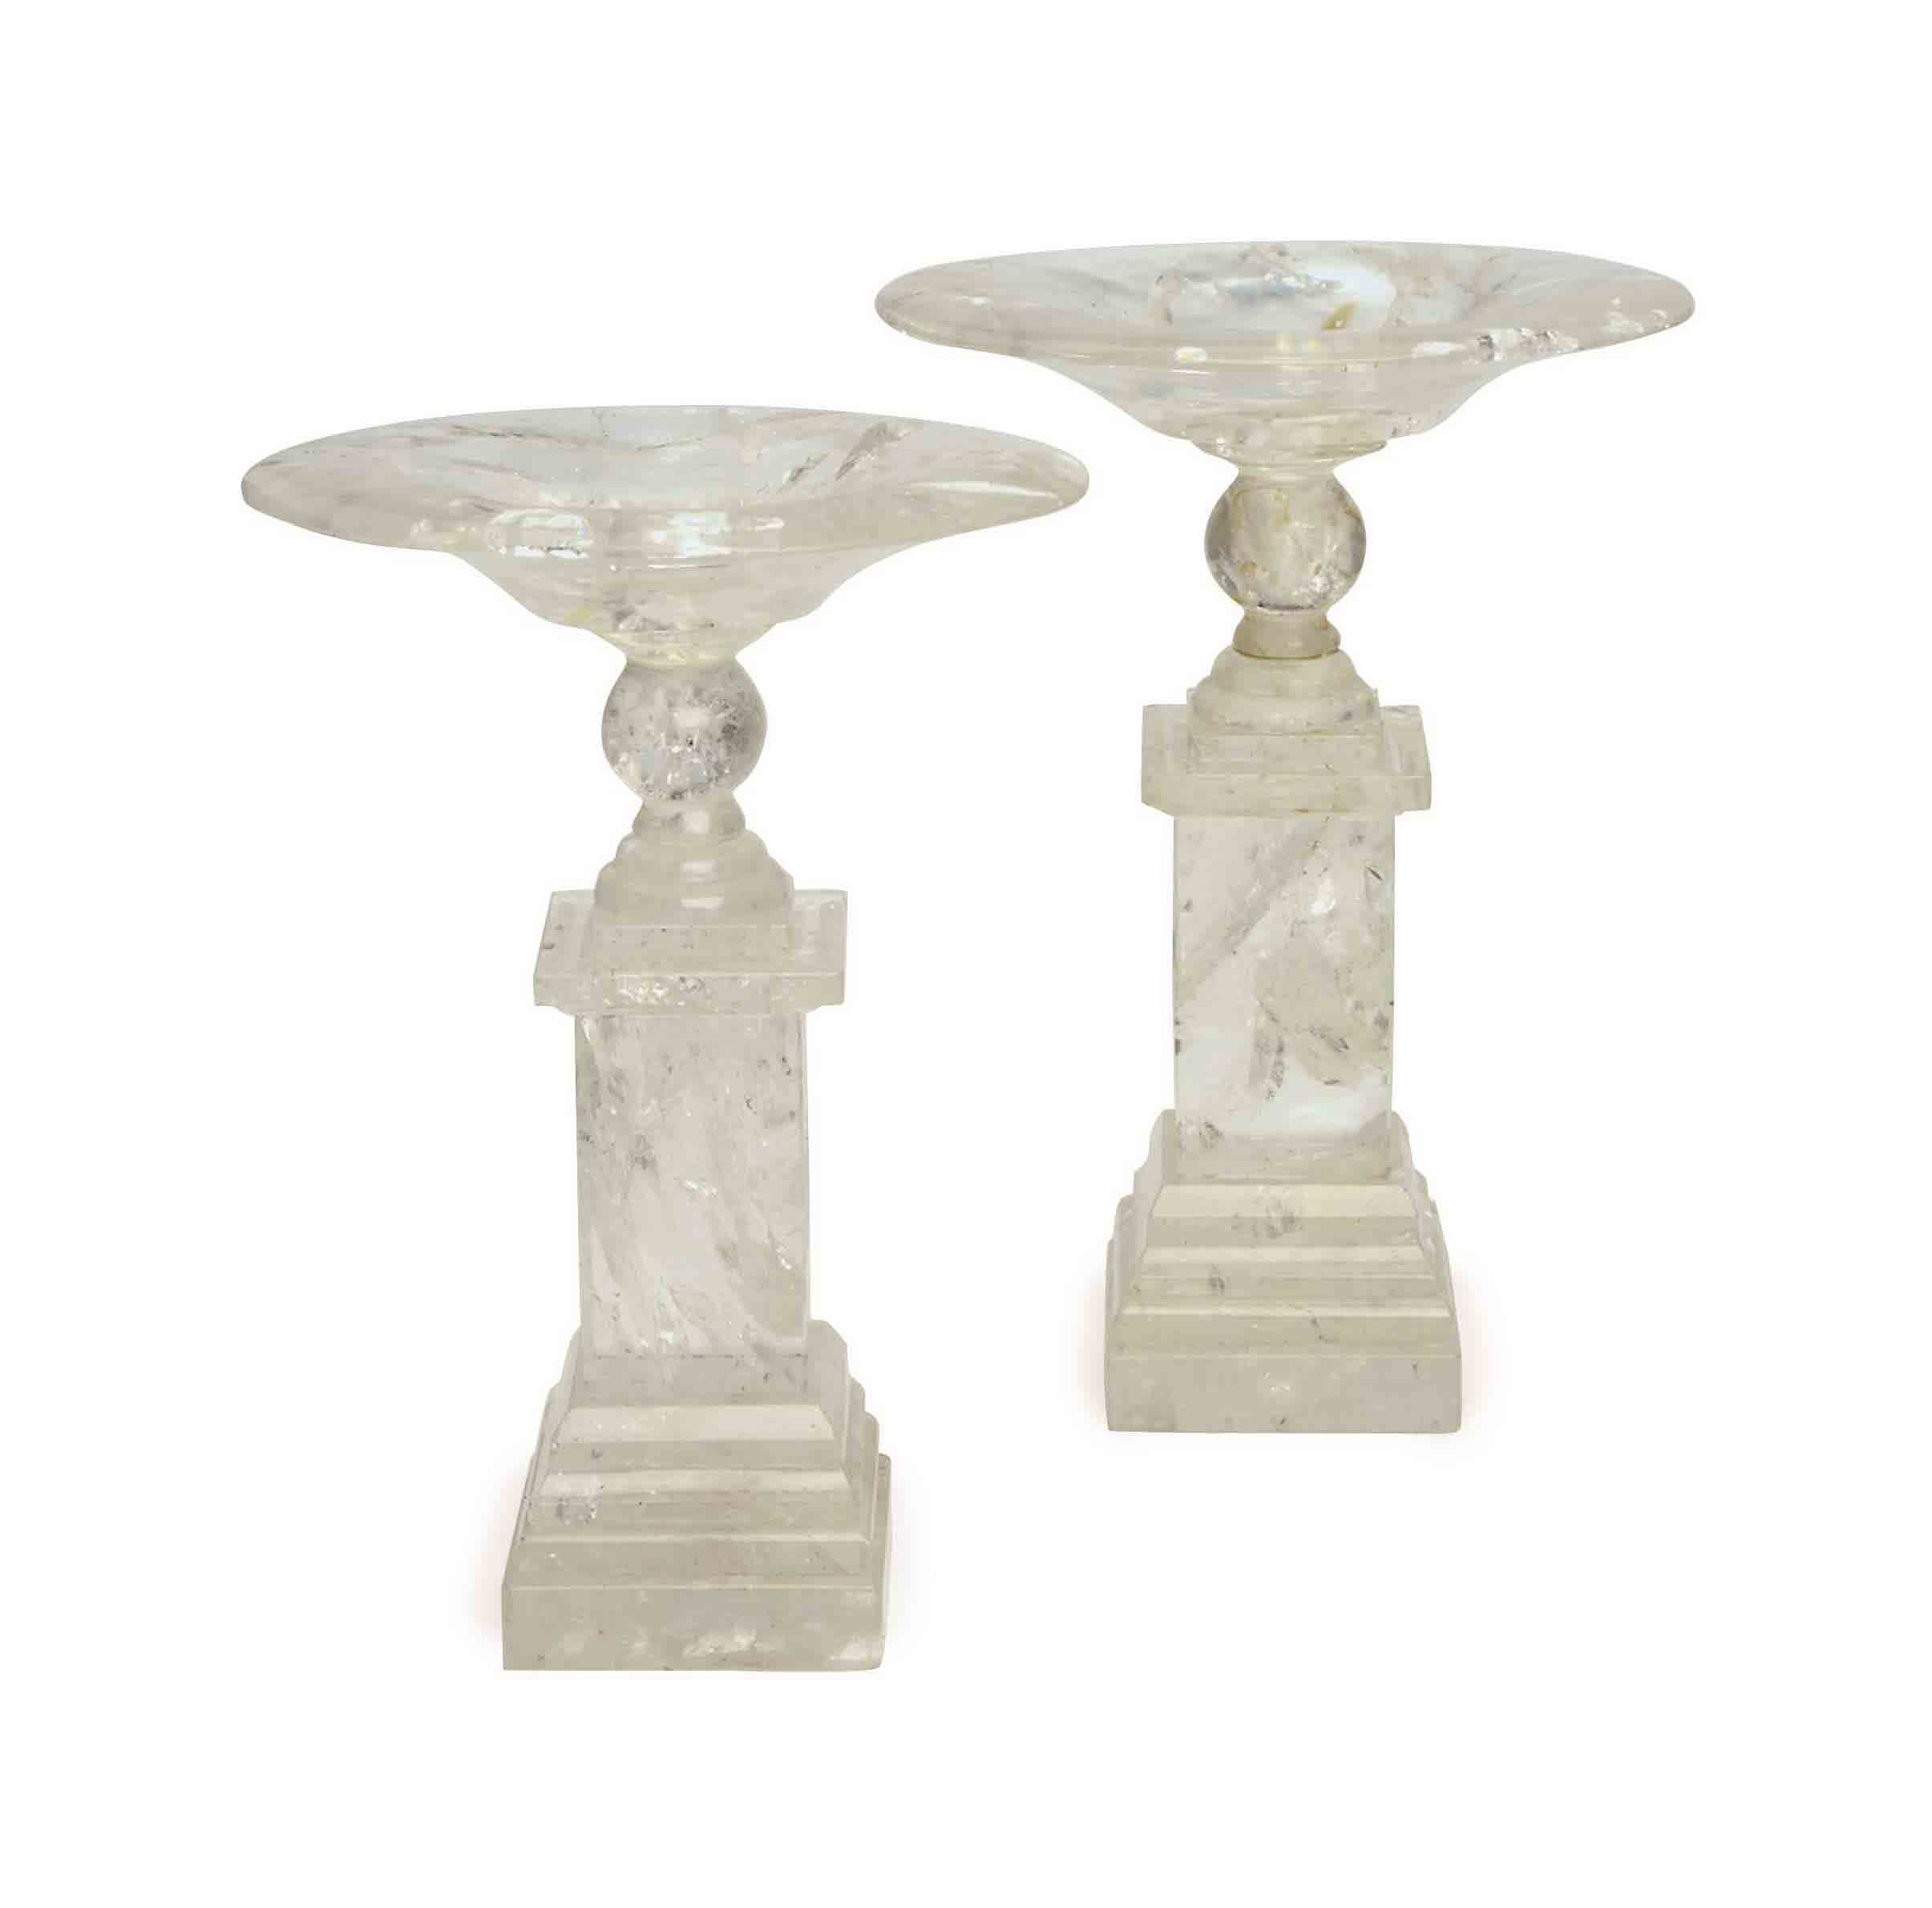 A PAIR OF ROCK CRYSTAL TAZZA,